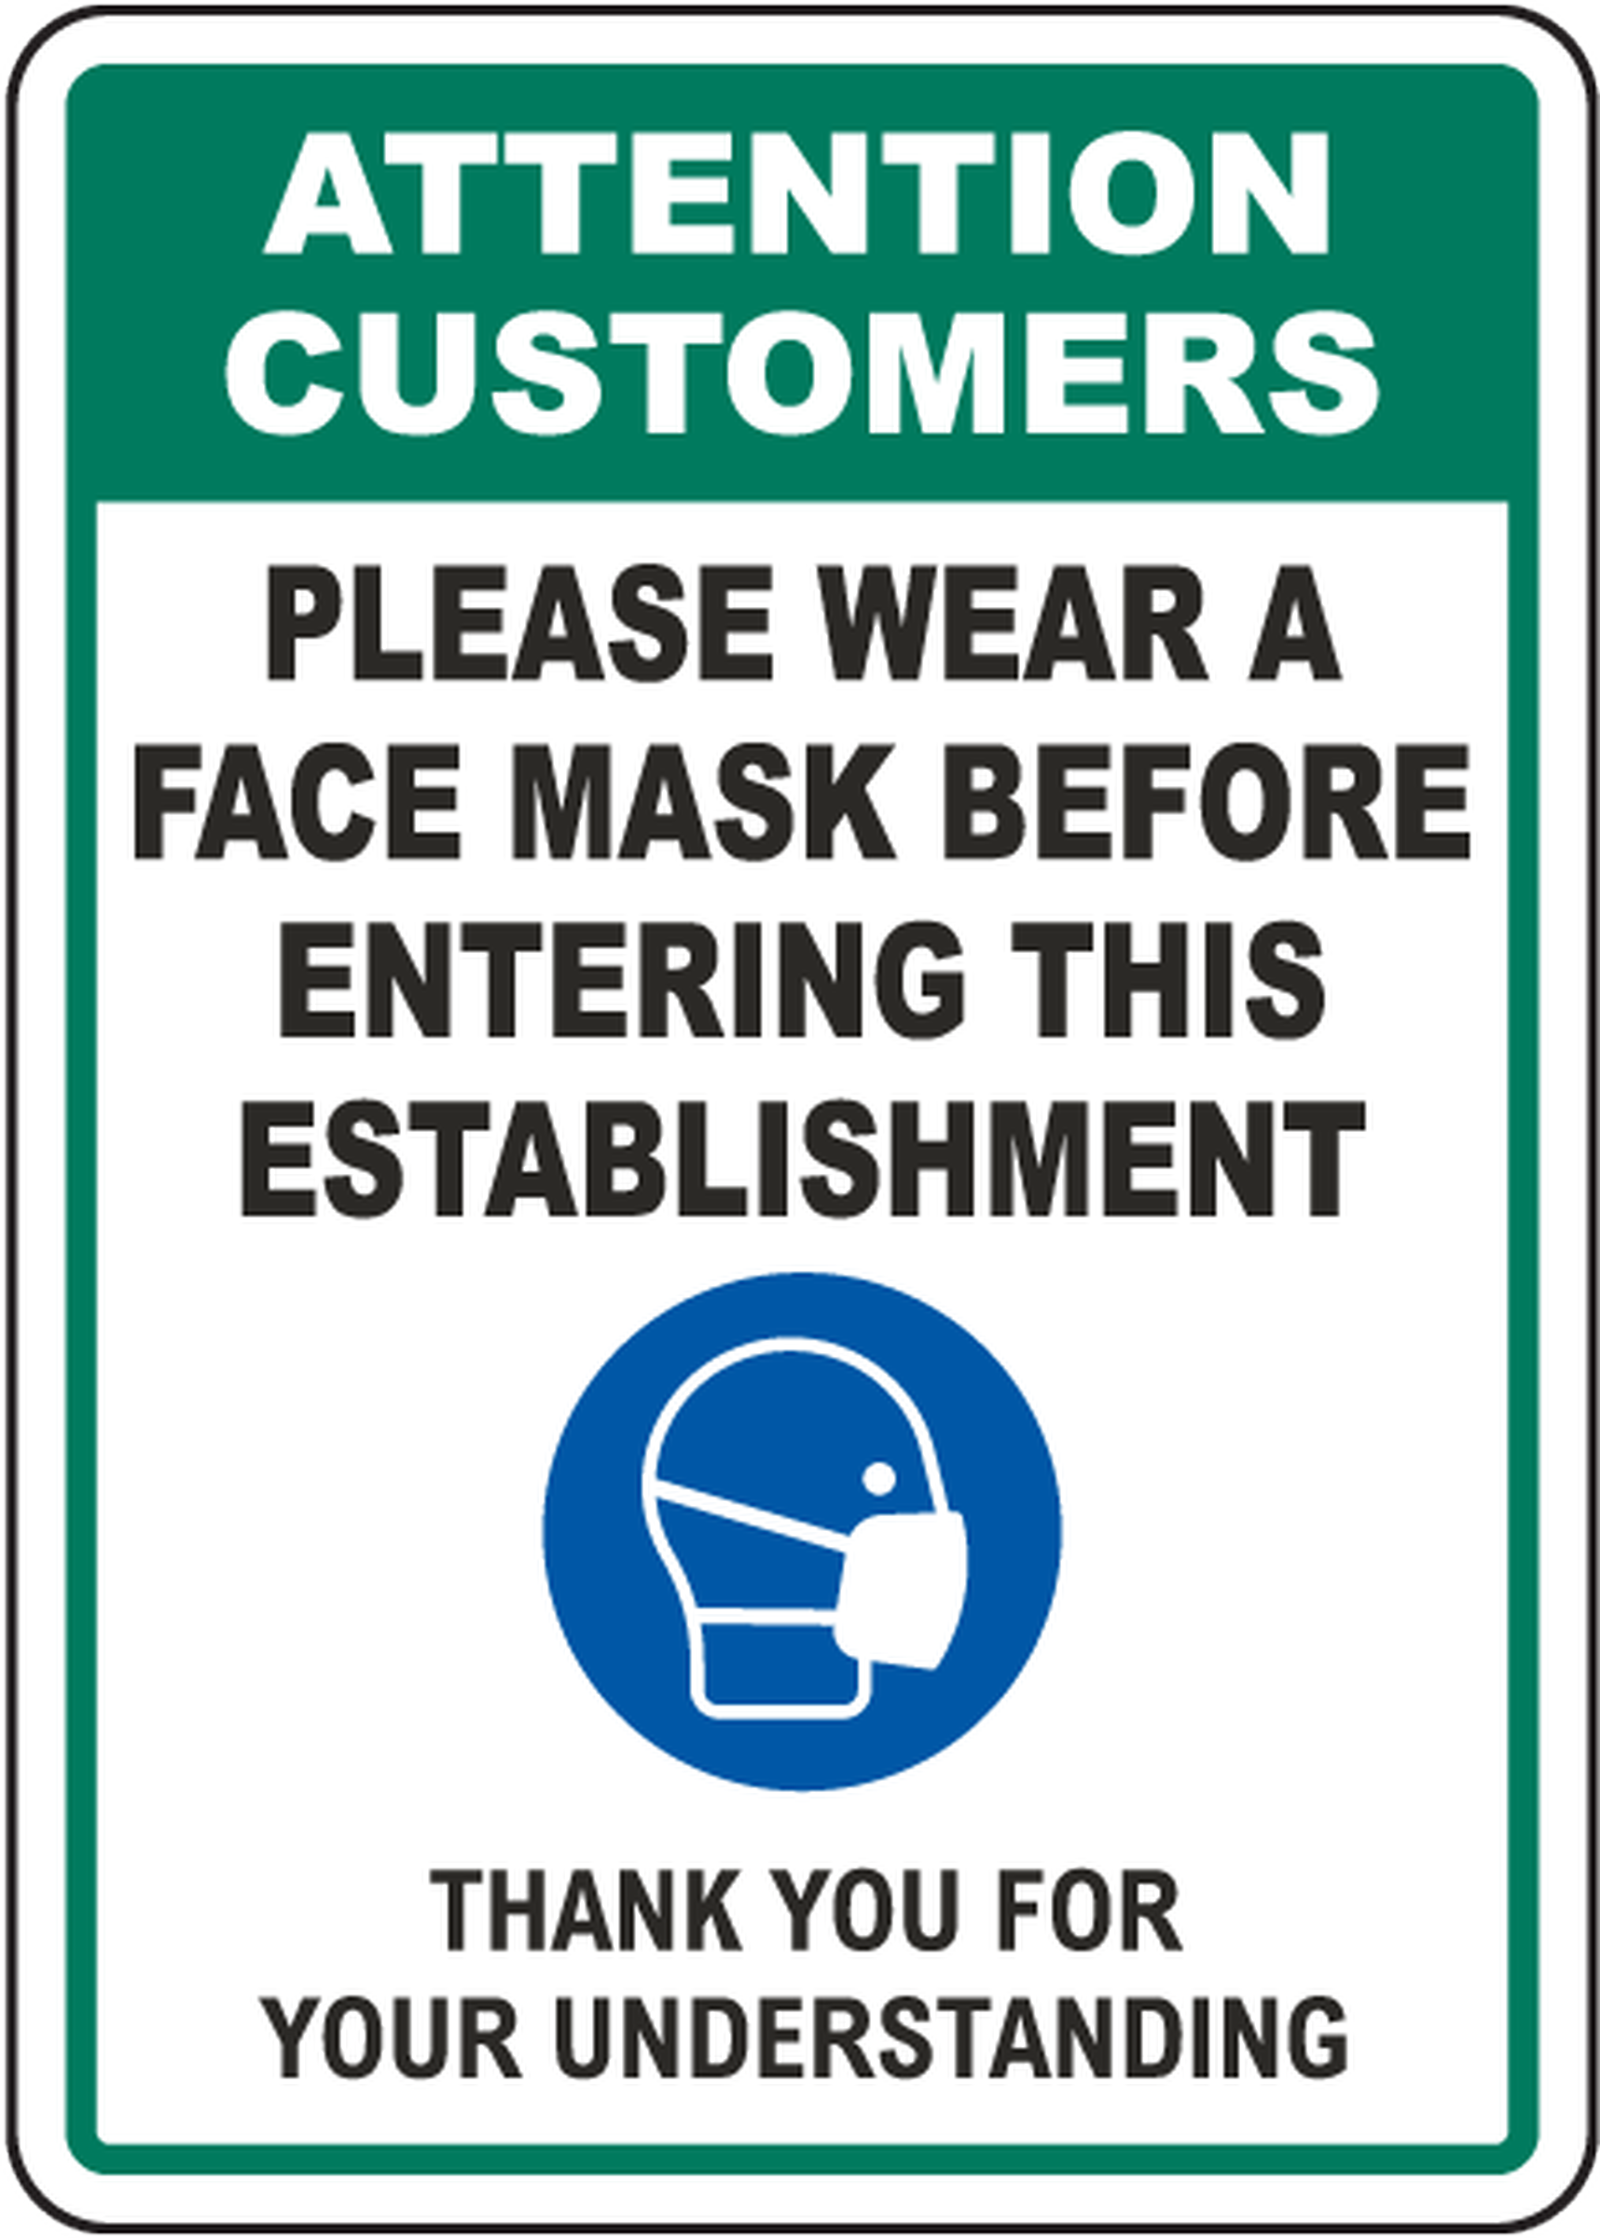 Please remember to wear a mask upon entering